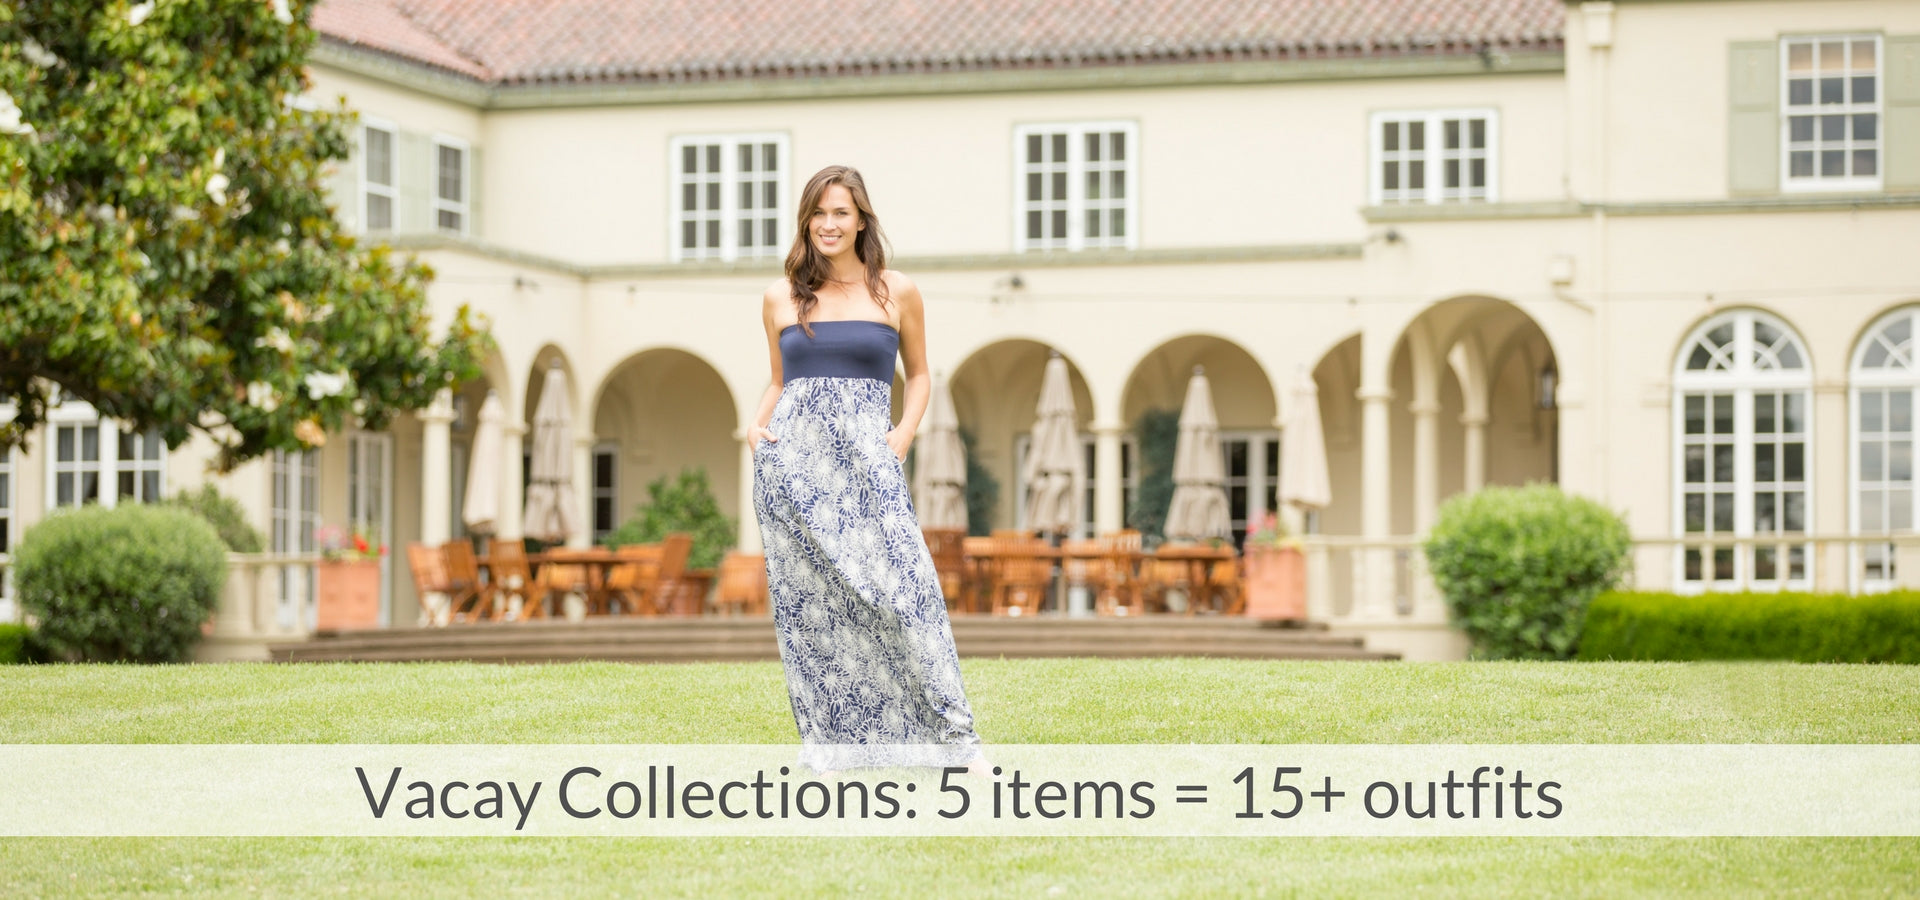 Vacay Collections: 5 items = 15+ outfits